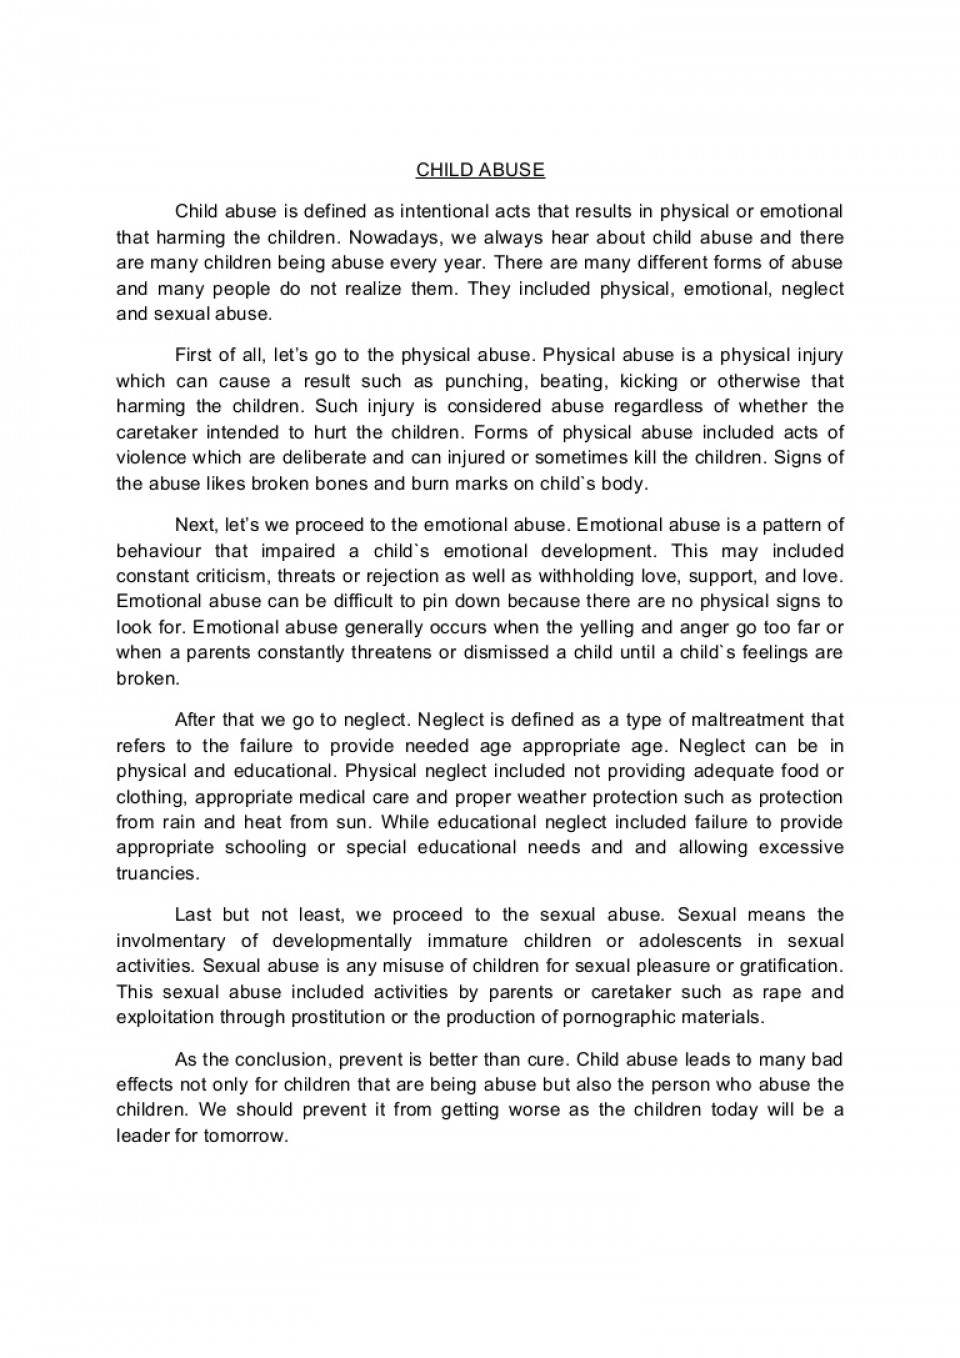 001 Conclusion Of Abuse Essay Childabusenewessay Phpapp02 Thumbnail Archaicawful Drug Alcohol 960